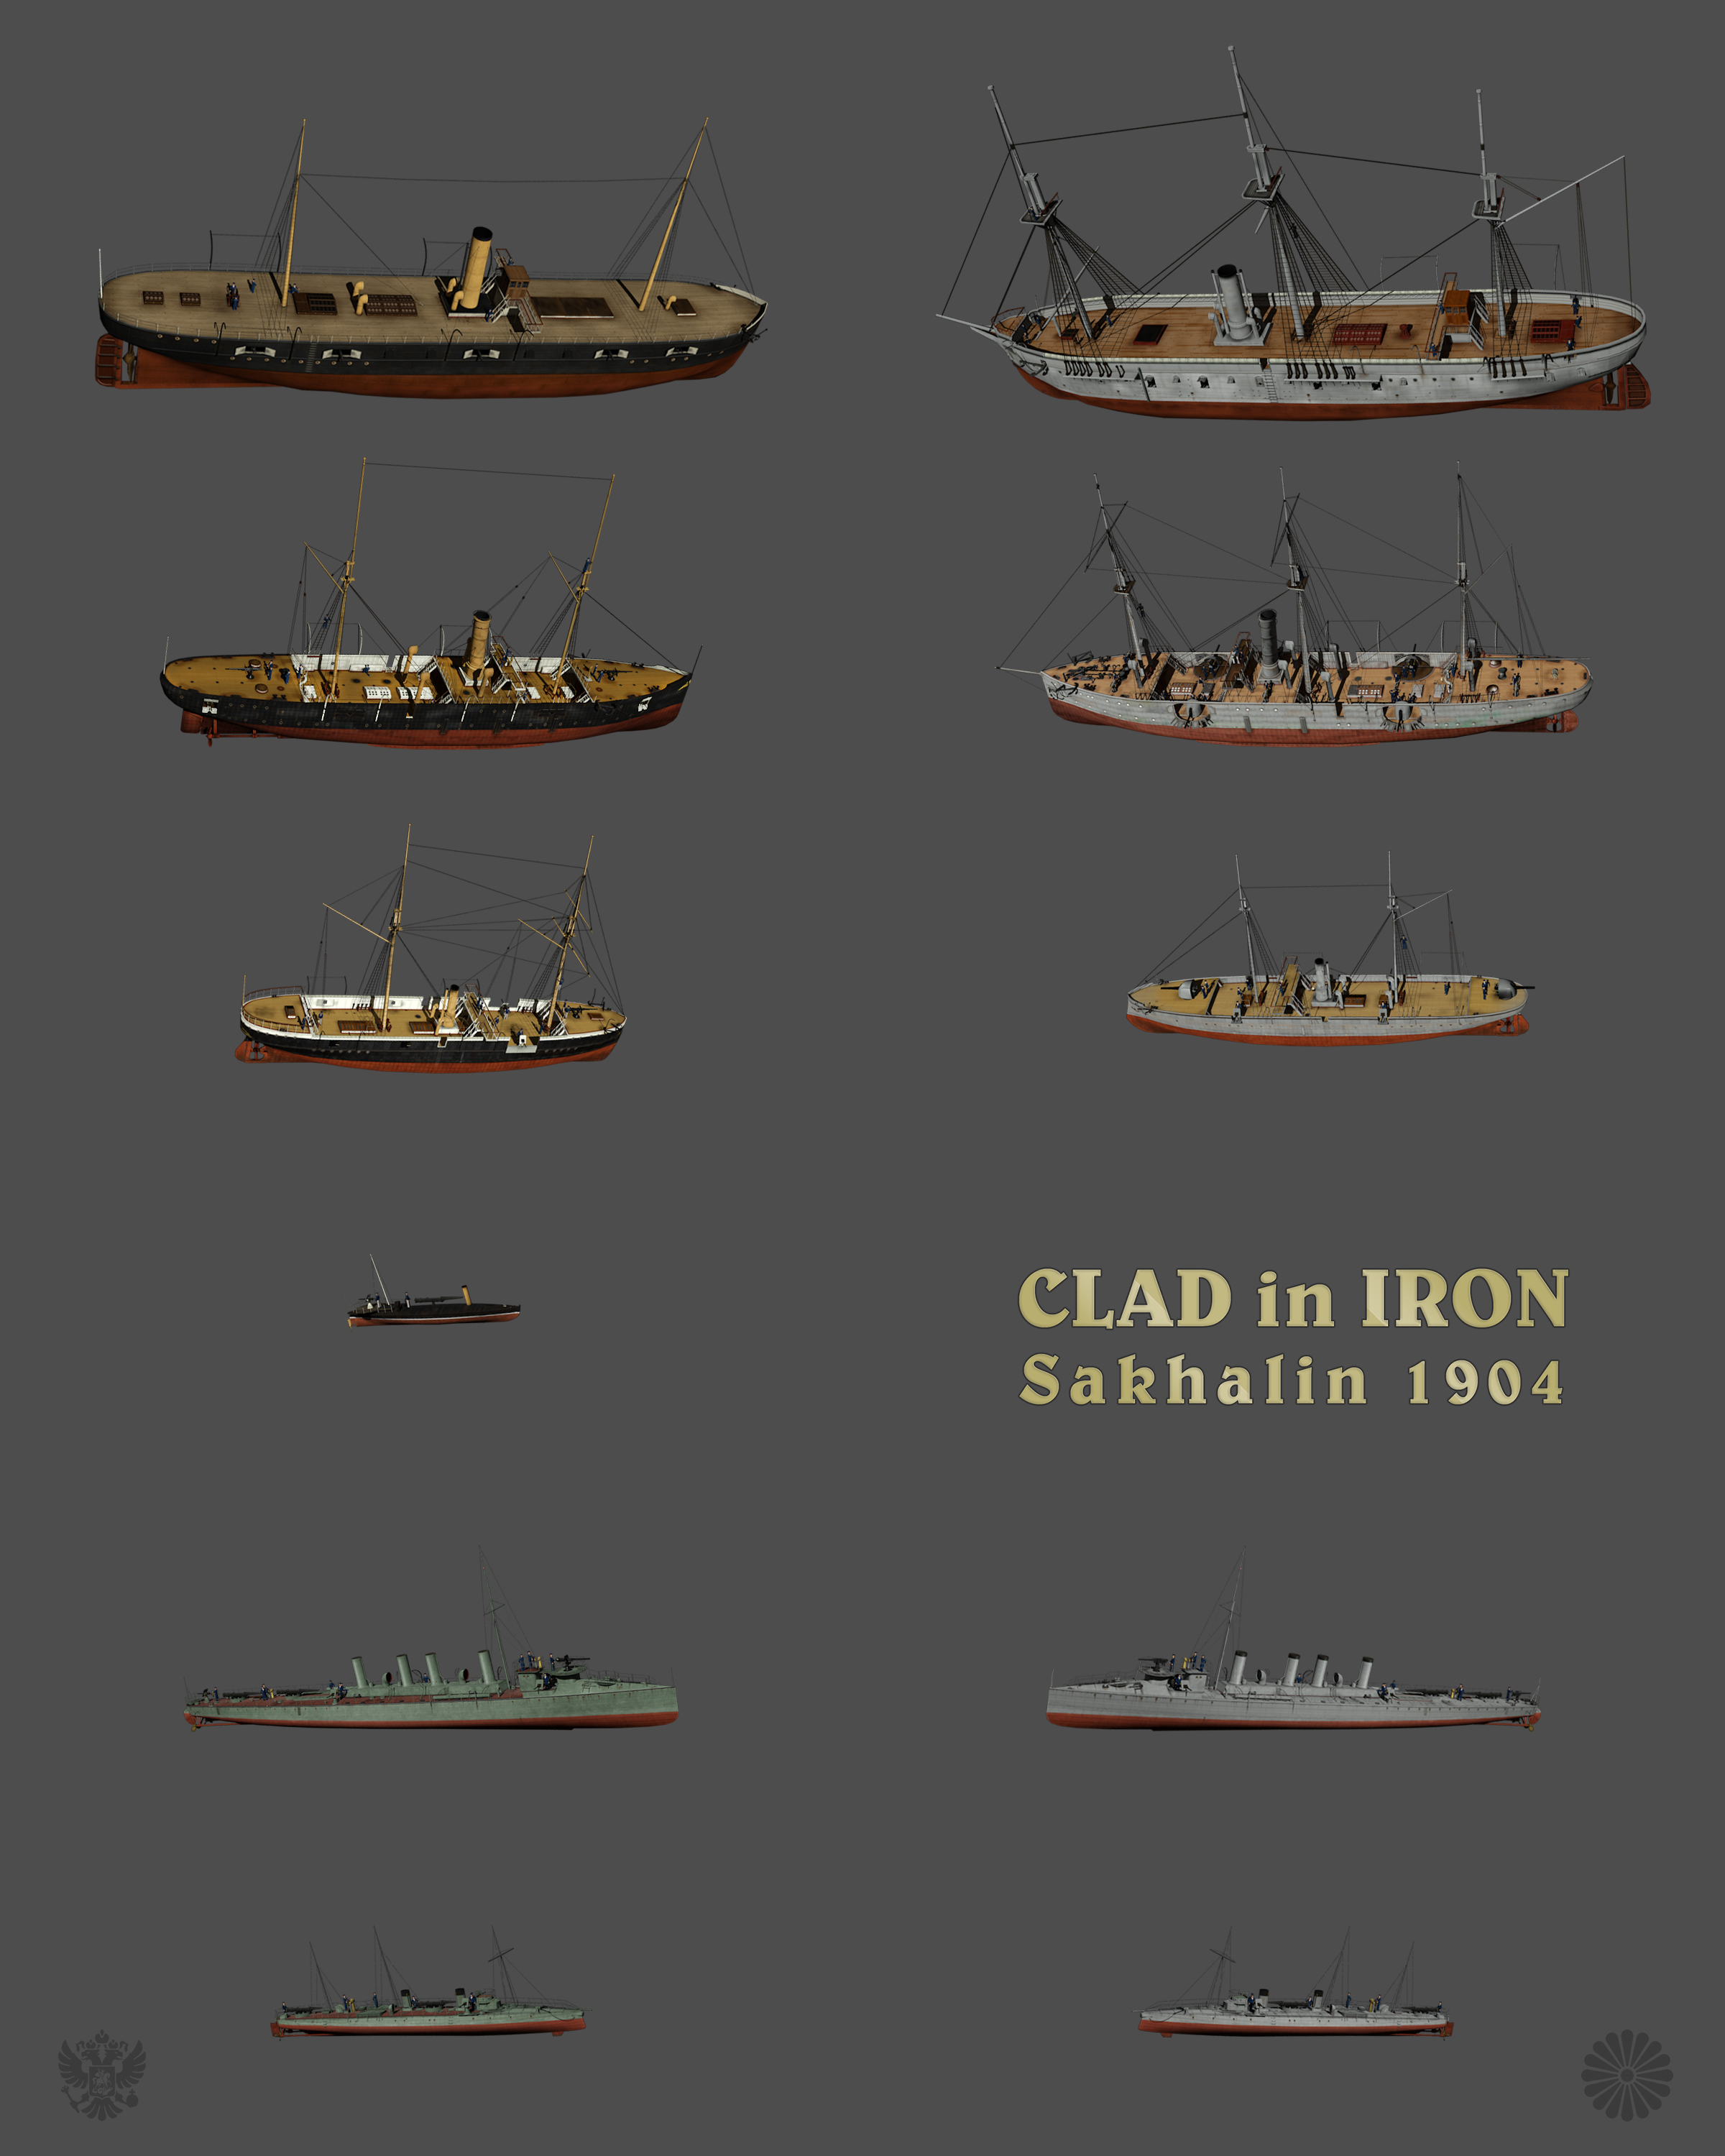 https://image.ibb.co/c8ahEU/Russian-and-Japanese-warships-for-Clad-in-Iron-Sakhalin-1904.png